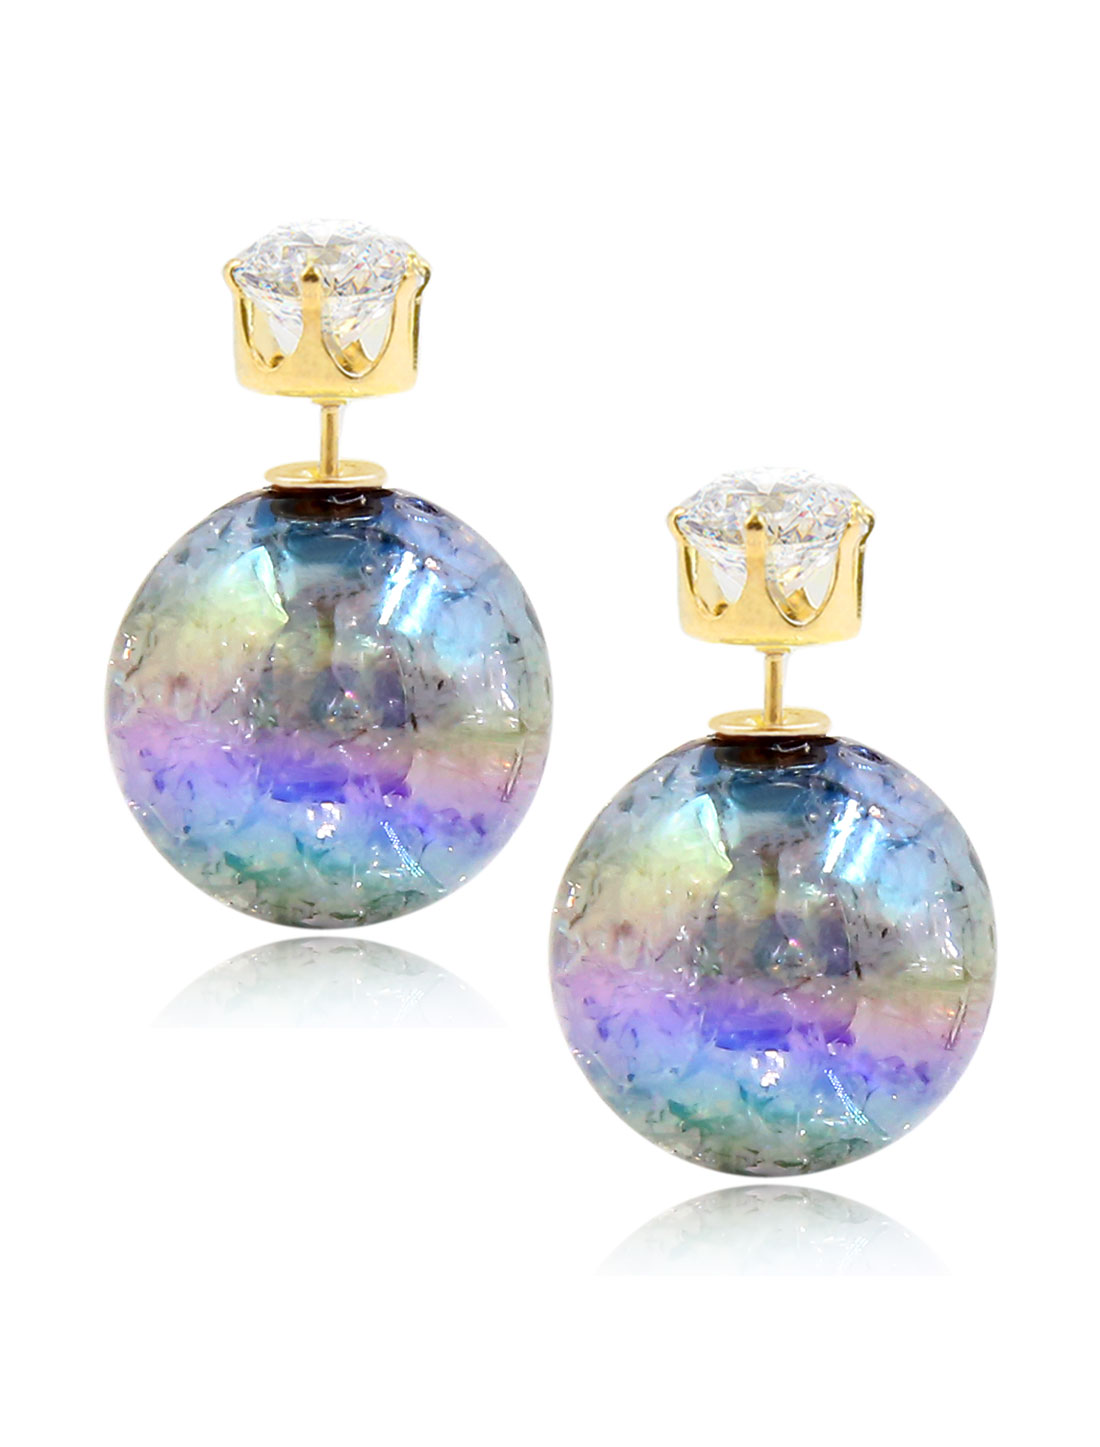 Fashion Women Elegant Double Sides Zircon Faux Crystal Ball Illusion-colour Earrings Ear Stud 1 Pair Gray